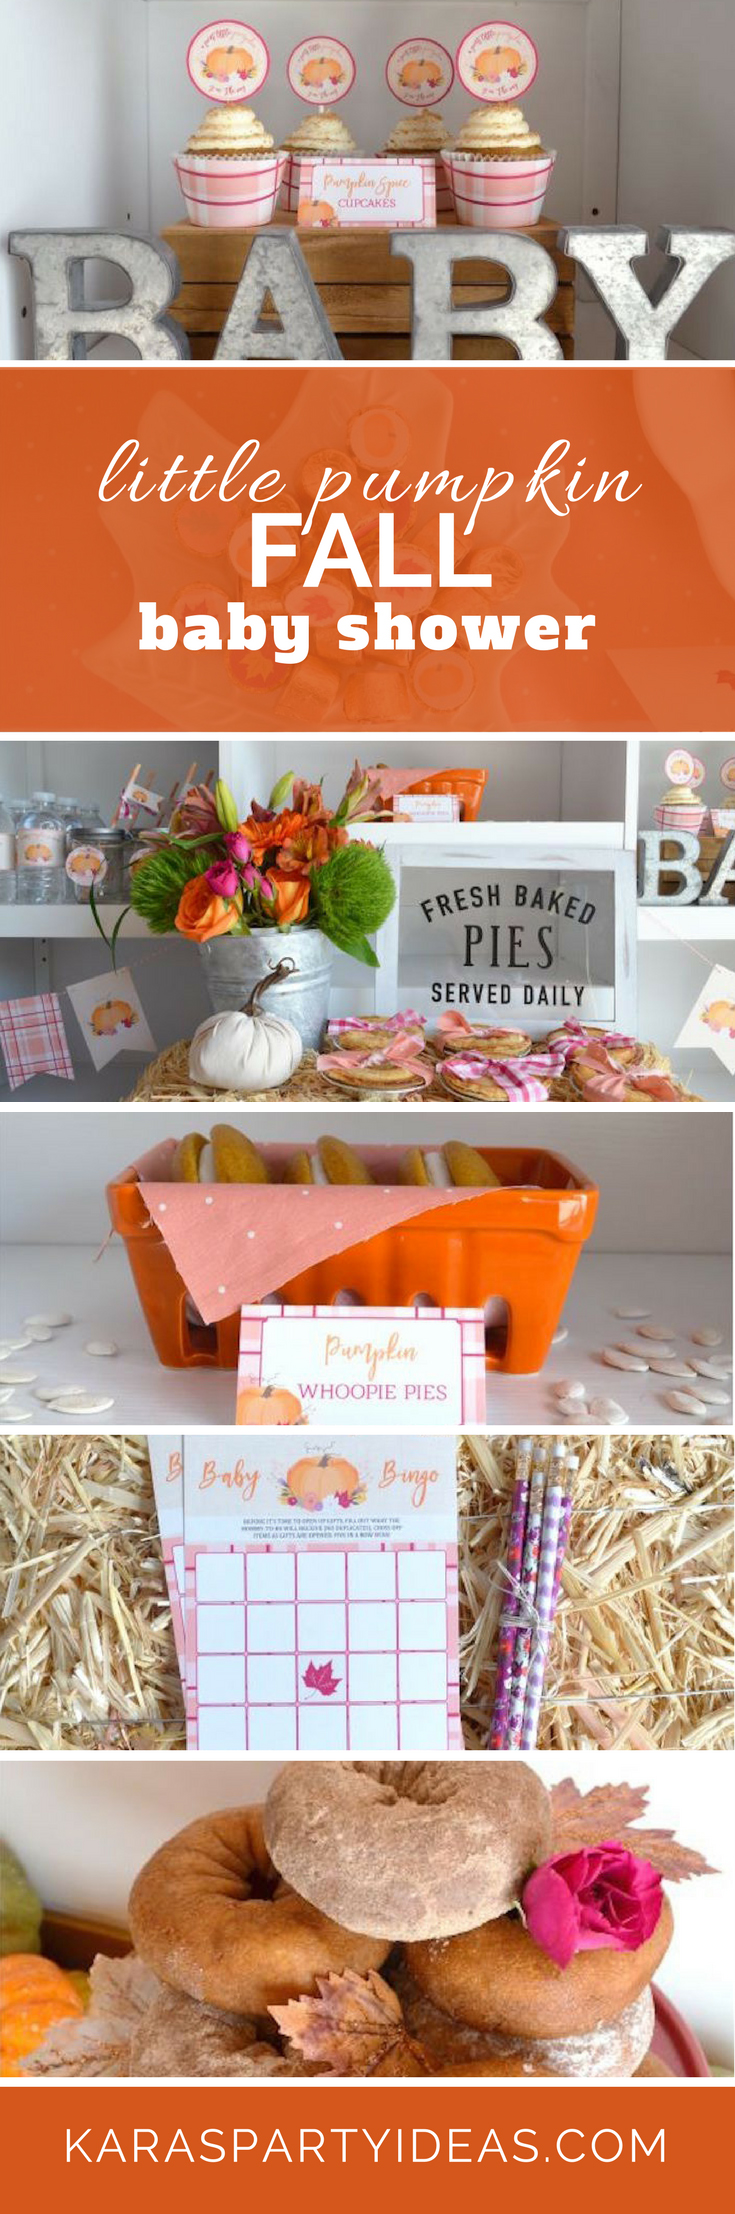 Little Pumpkin Fall Baby Shower via Kara's Party Ideas - KarasPartyIdeas.com